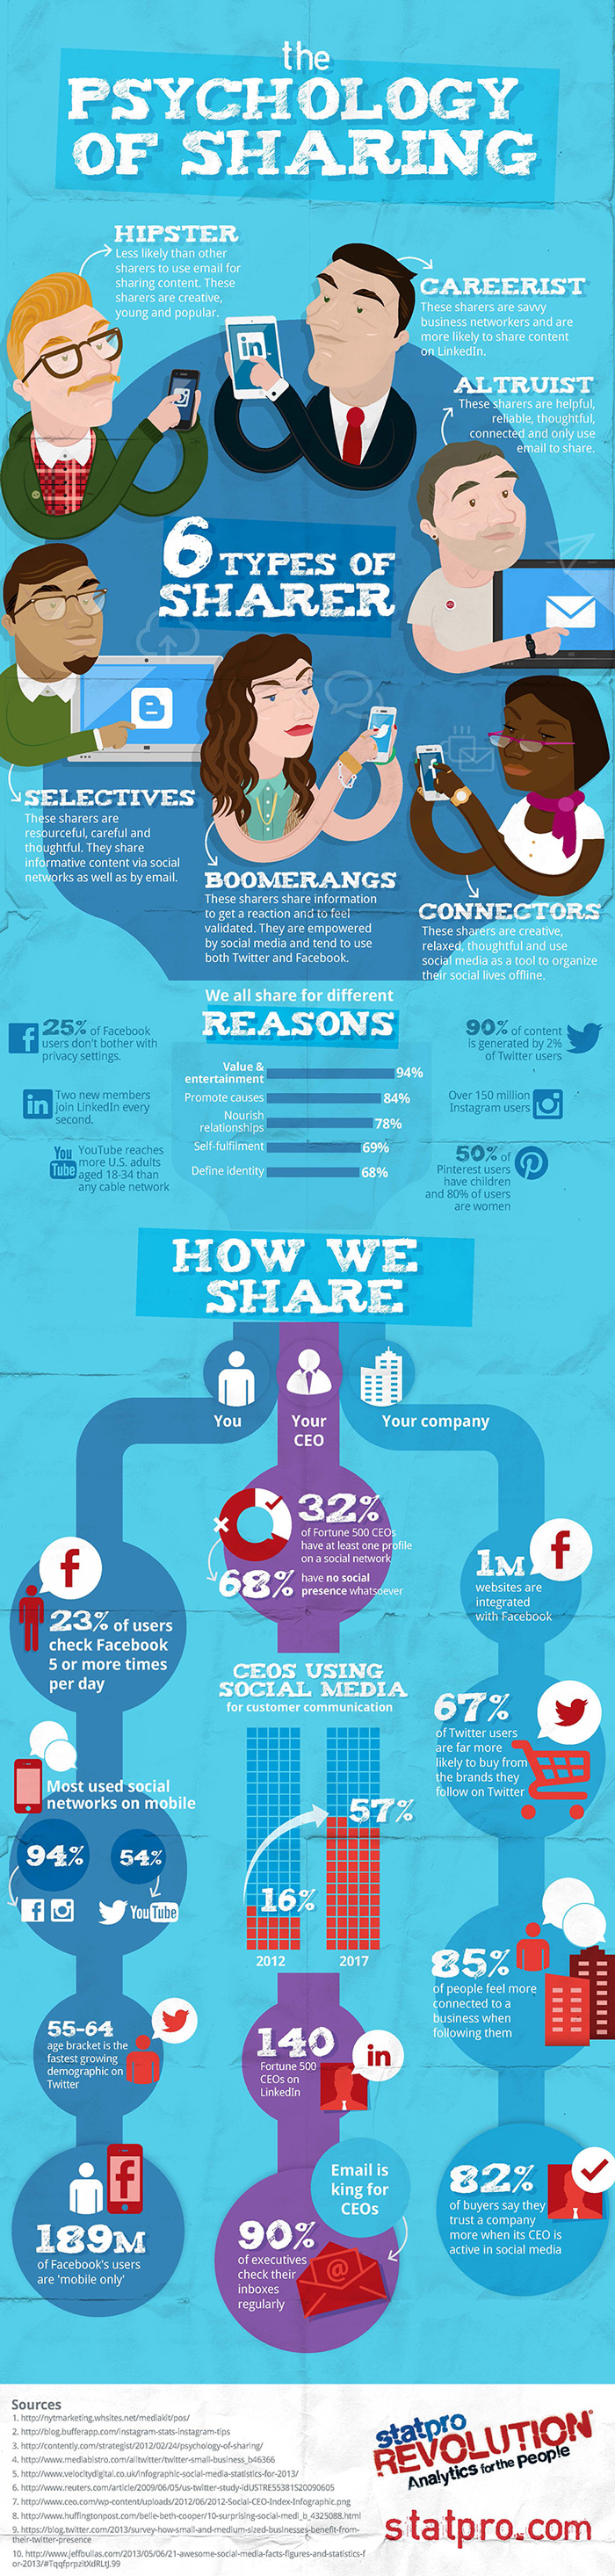 08 psychology-of-sharing-infographic